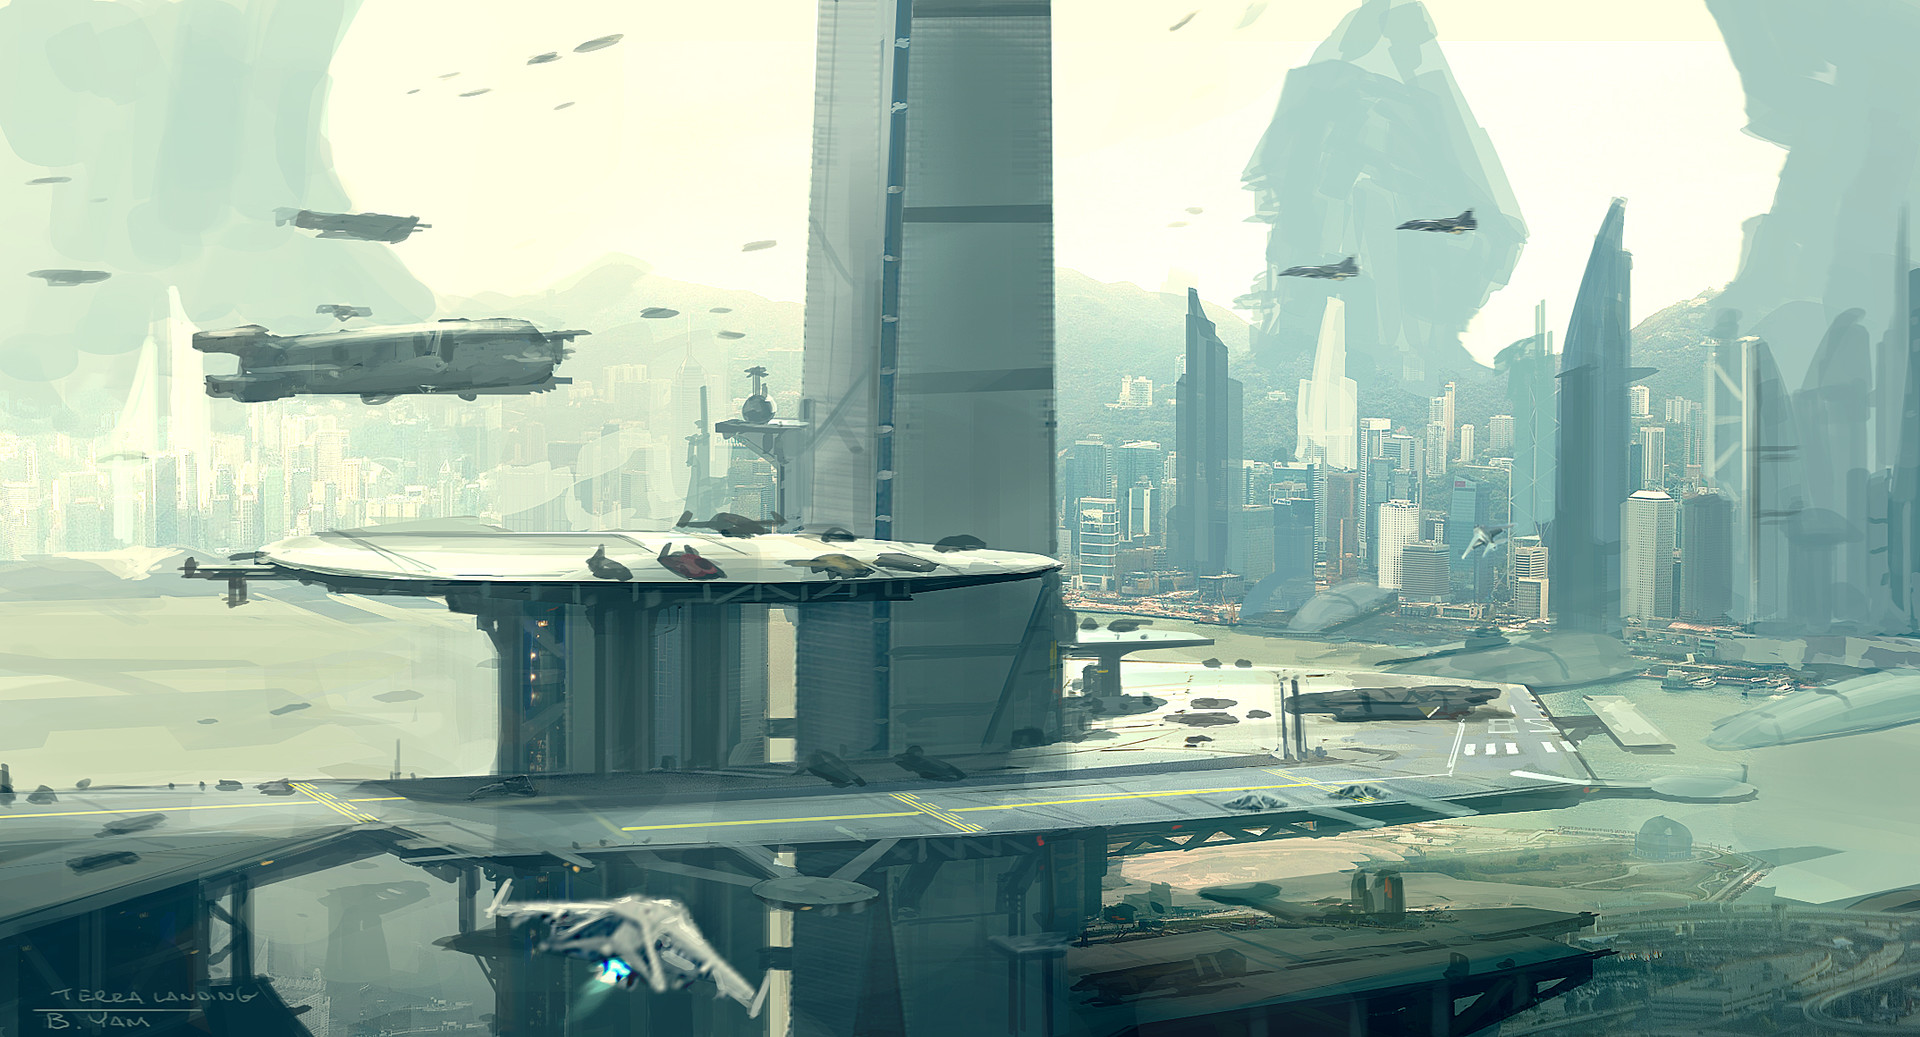 Brian yam terra spaceport sketch d color